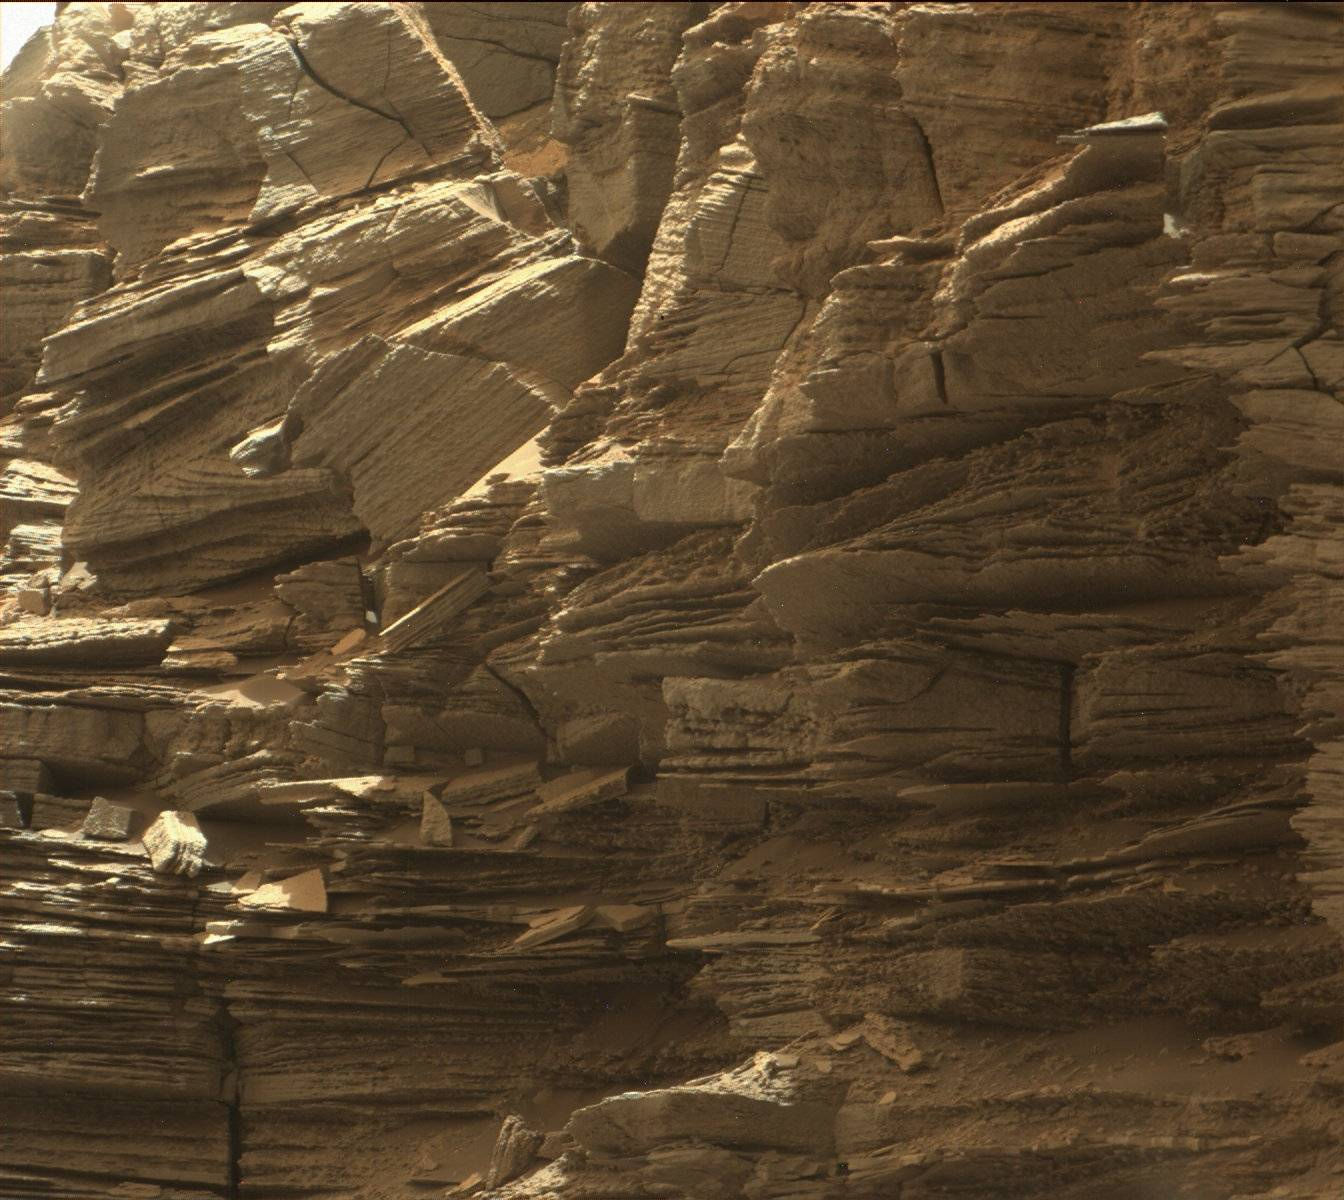 16-09-08-mars-curiosity-rover-msl-rock-layers-pia21043-full